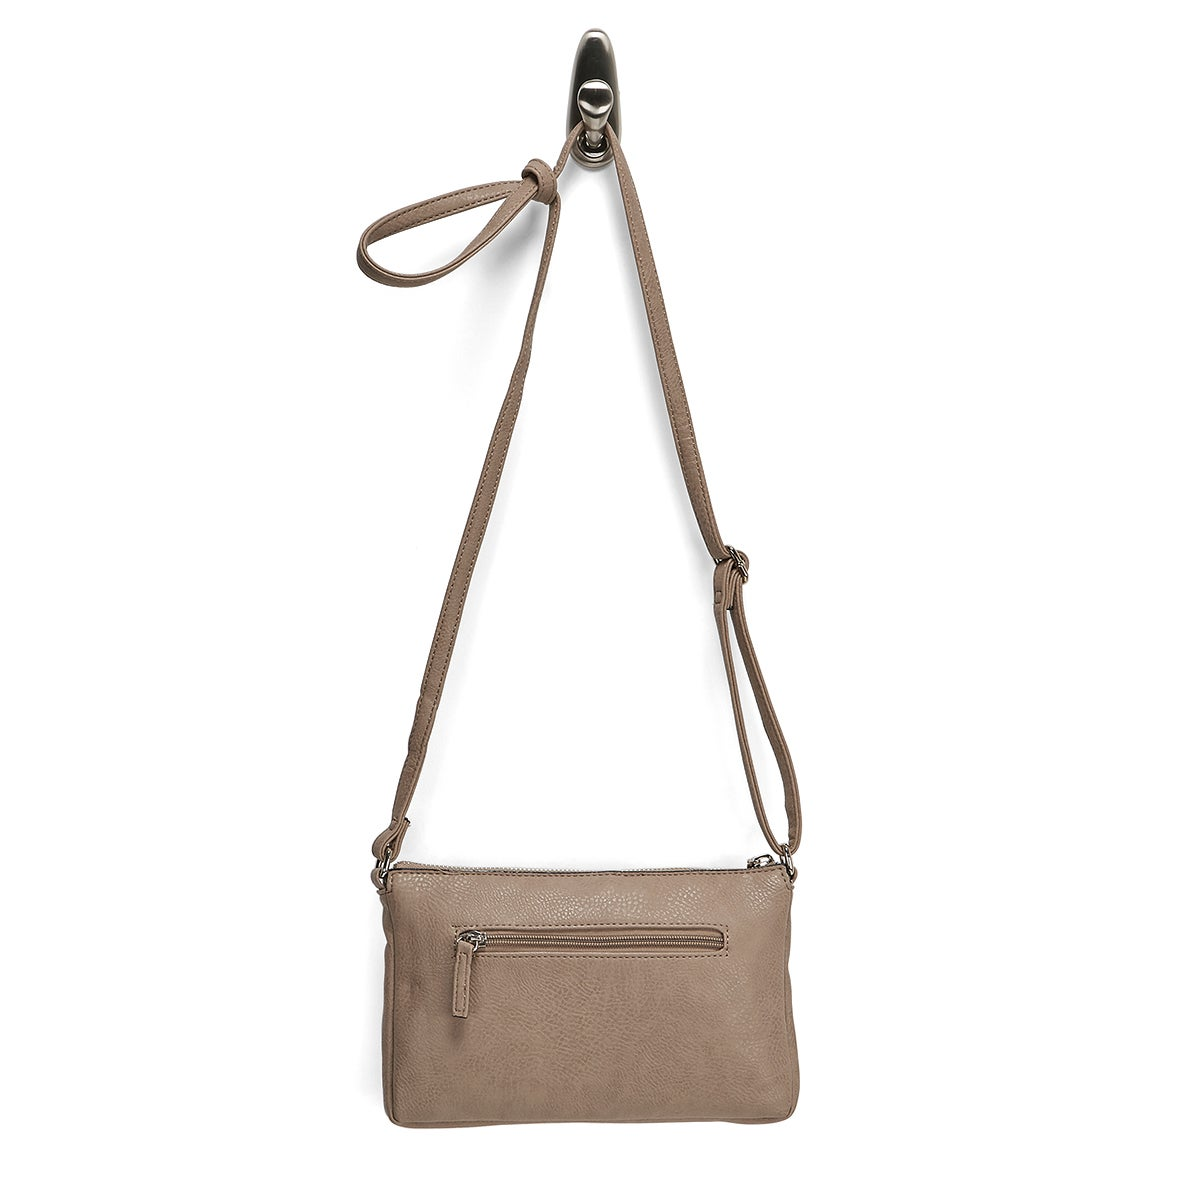 Lds Roots73 taupe east/west crossbody